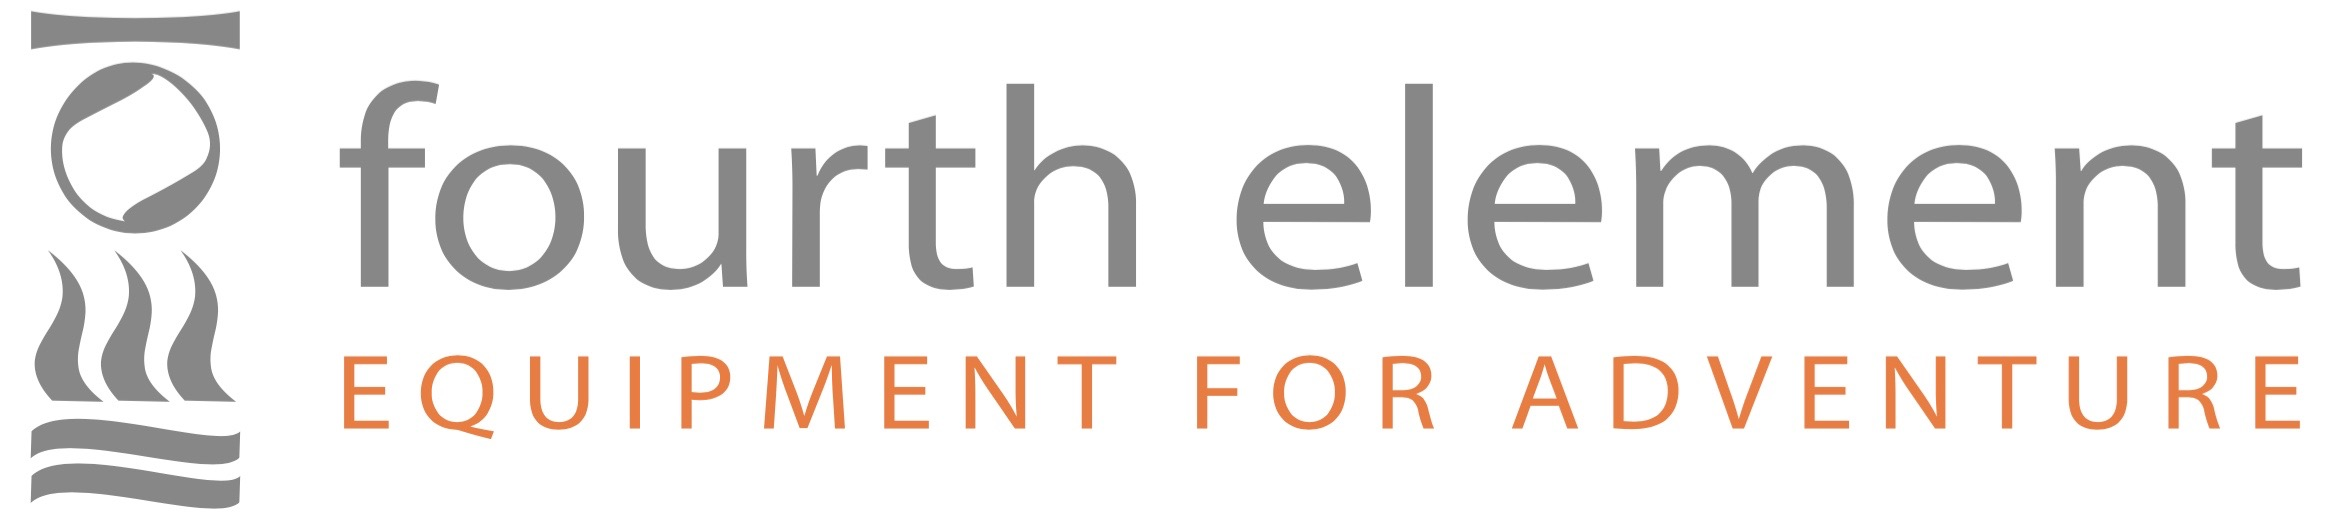 FourthElementLogo.jpg